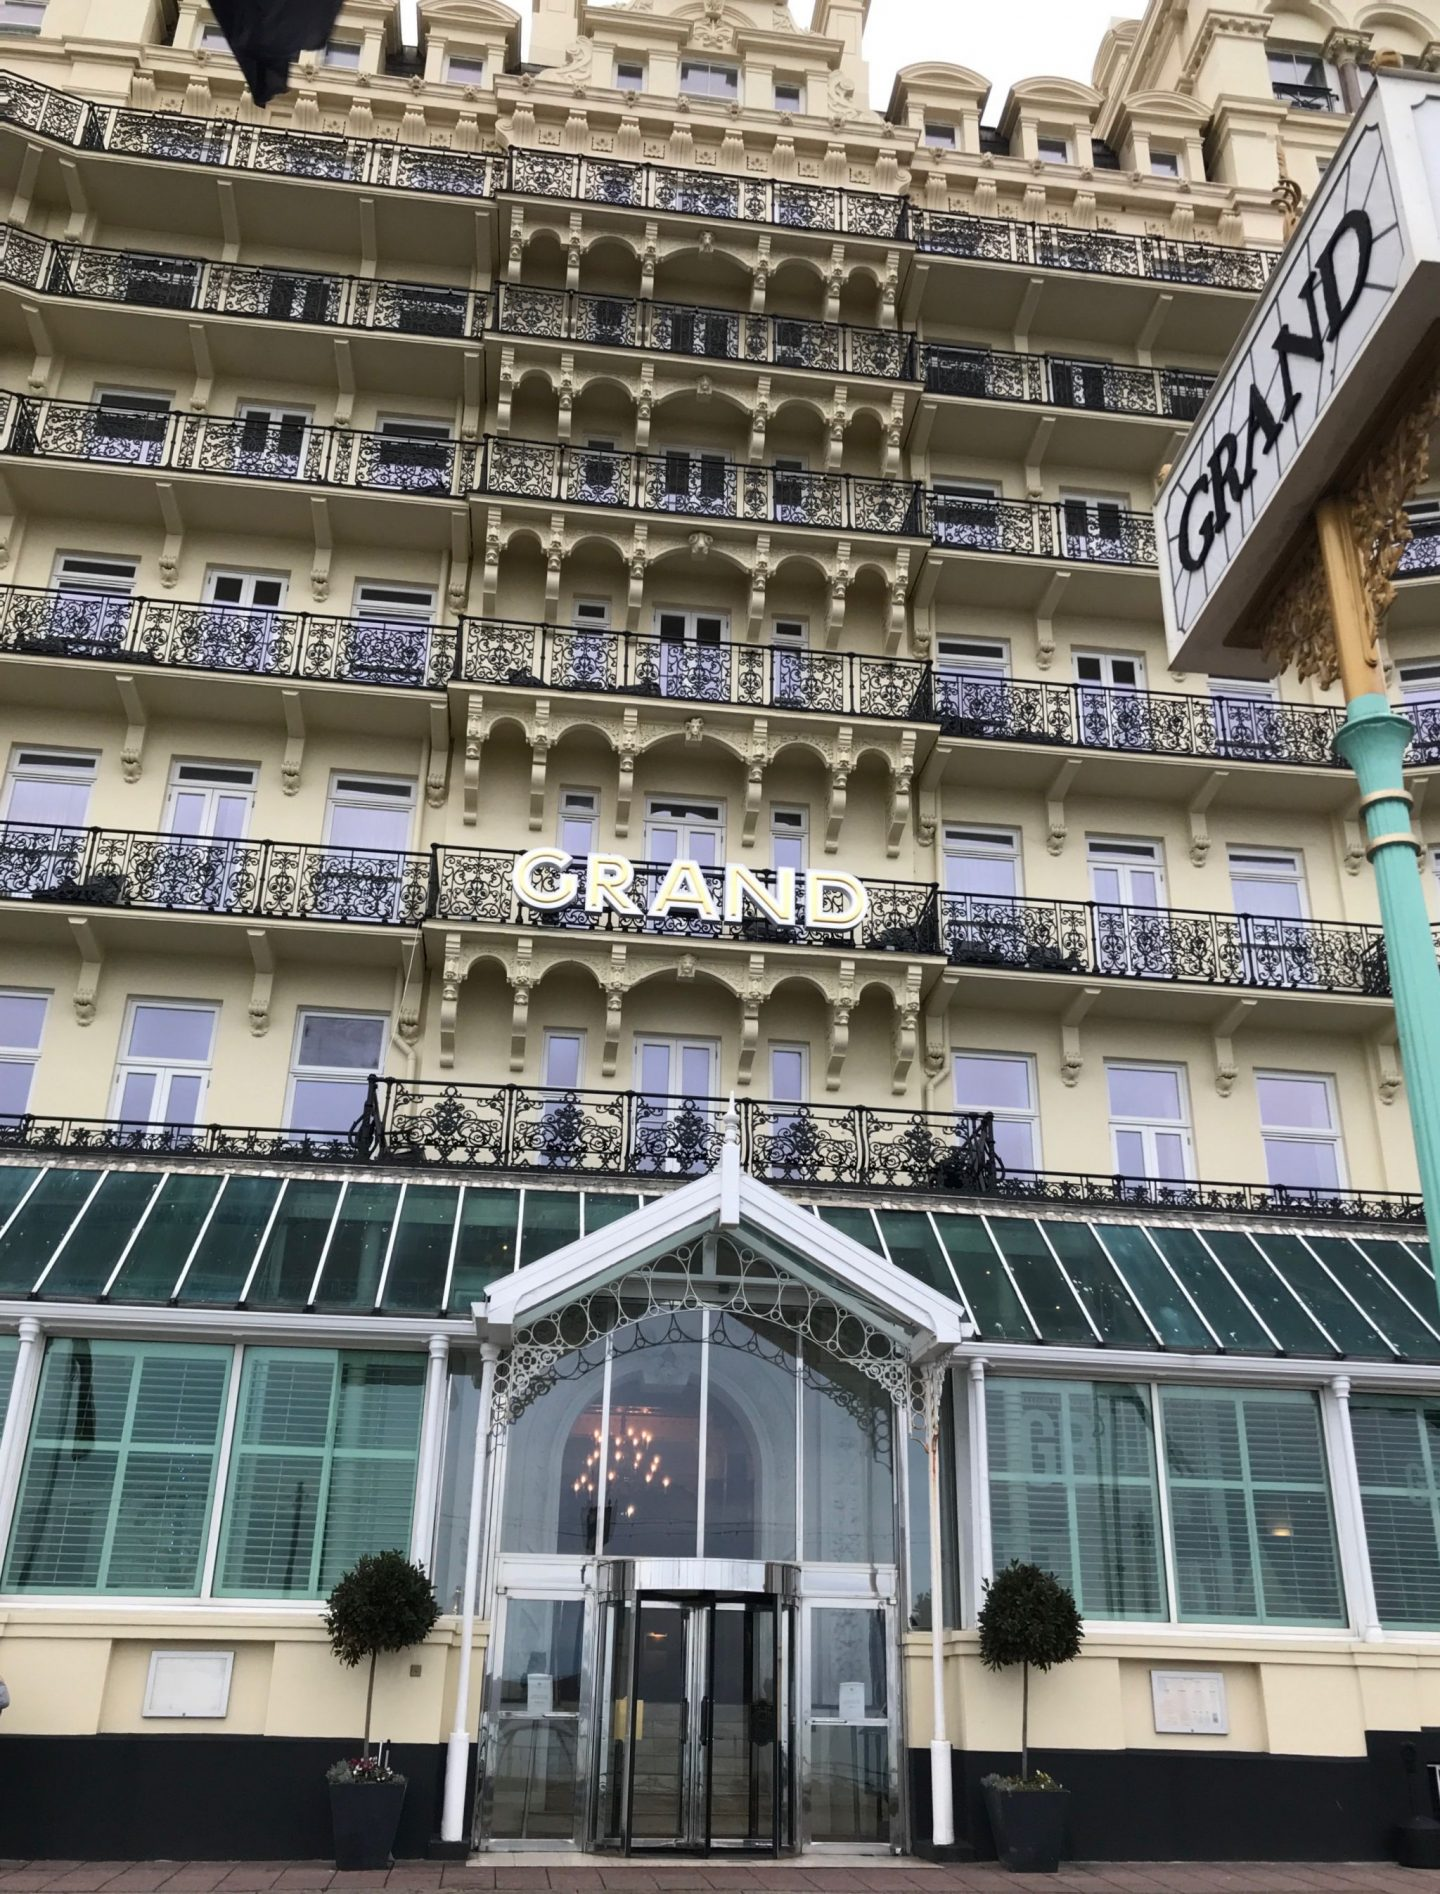 Many years ago I stayed in a hotel along the seafront and I remember walking past The Grand Hotel wishing that I was staying there.